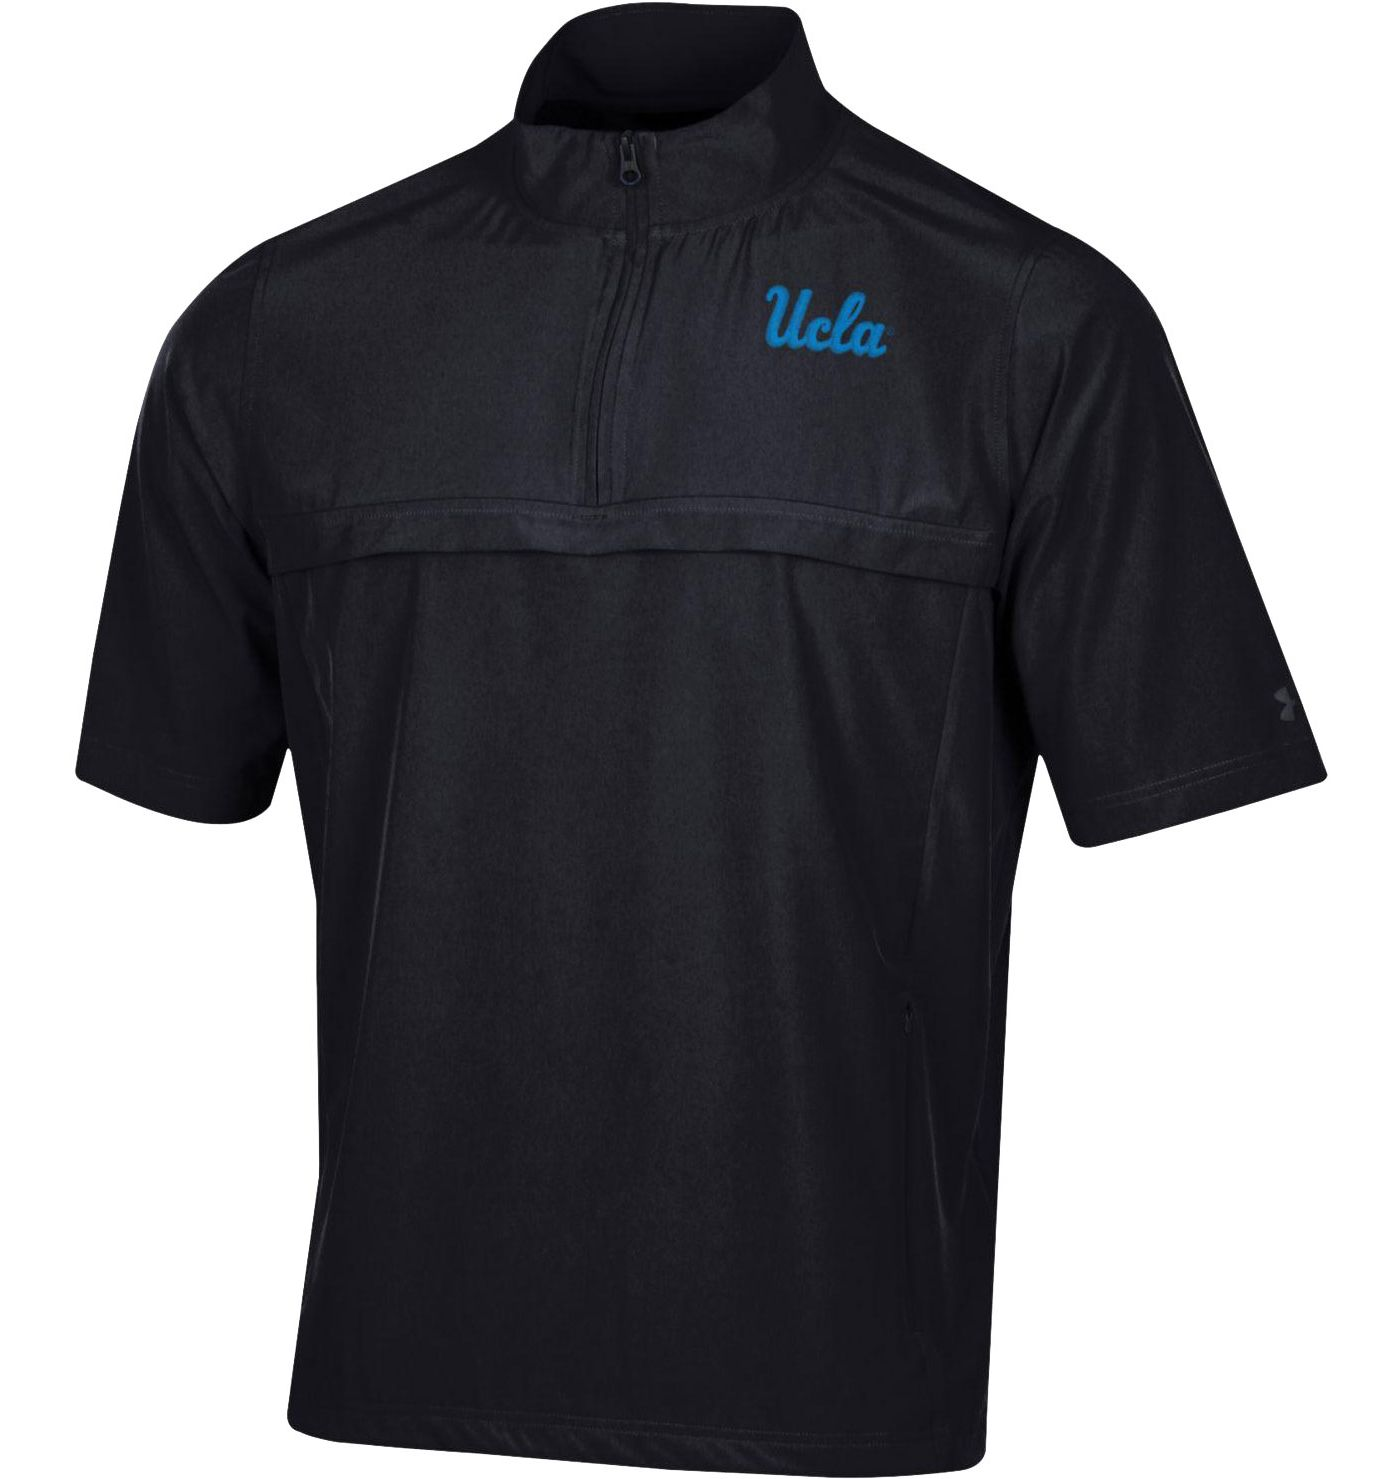 Under Amour Men's UCLA Bruins 'Chip Kelly' Half-Sleeve Quarter-Zip Black Shirt